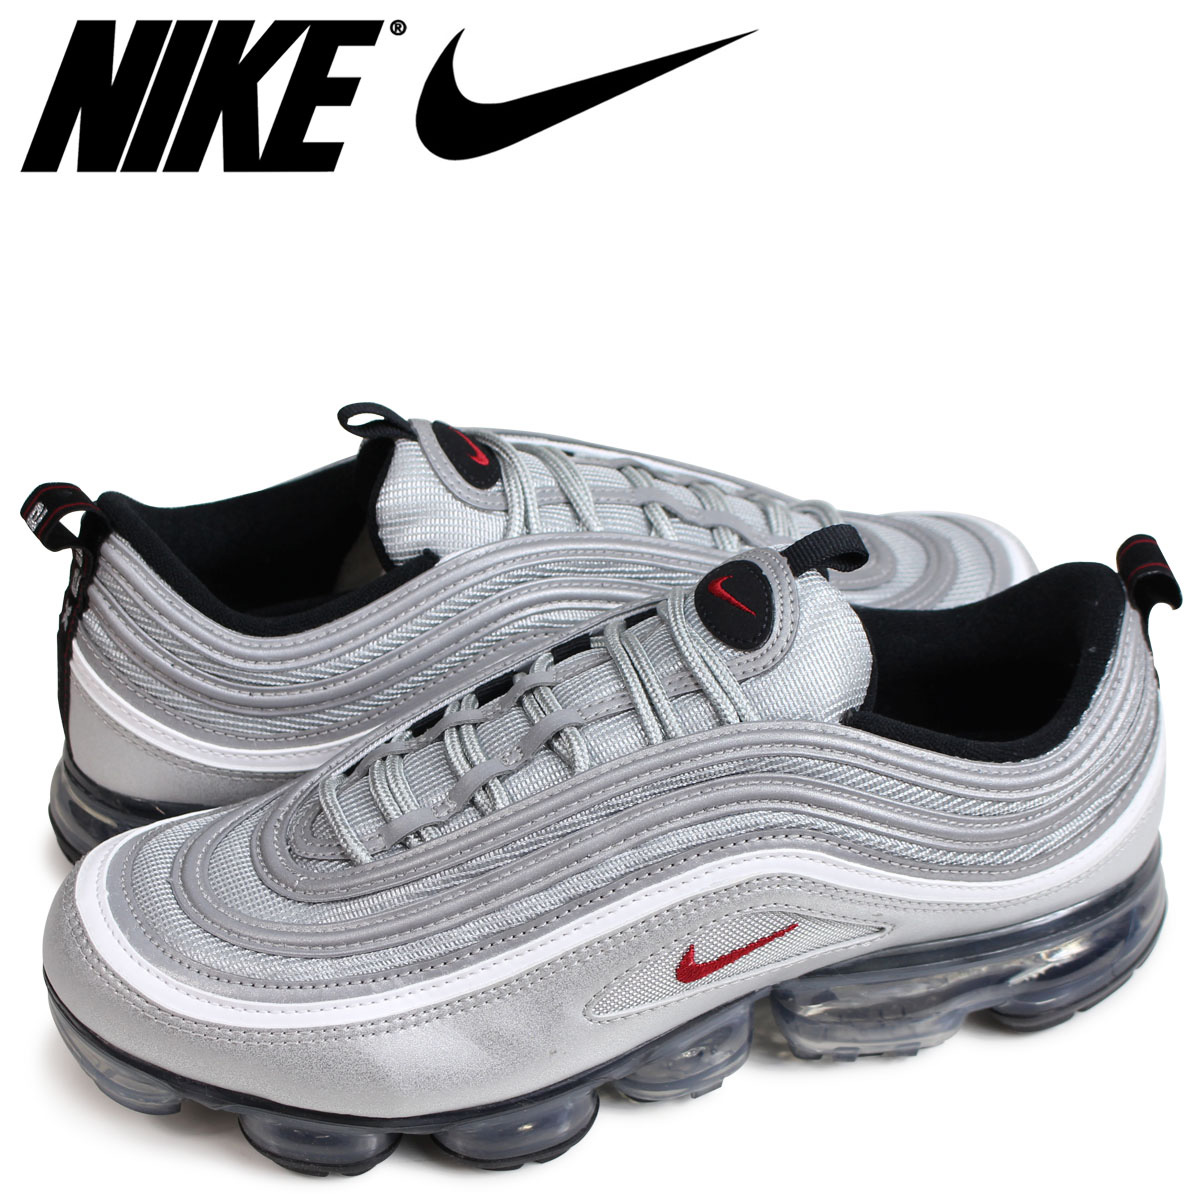 finest selection 4547b cc870 NIKE AIR VAPORMAX 97 Nike air vapor max 97 sneakers men silver AJ7291-002